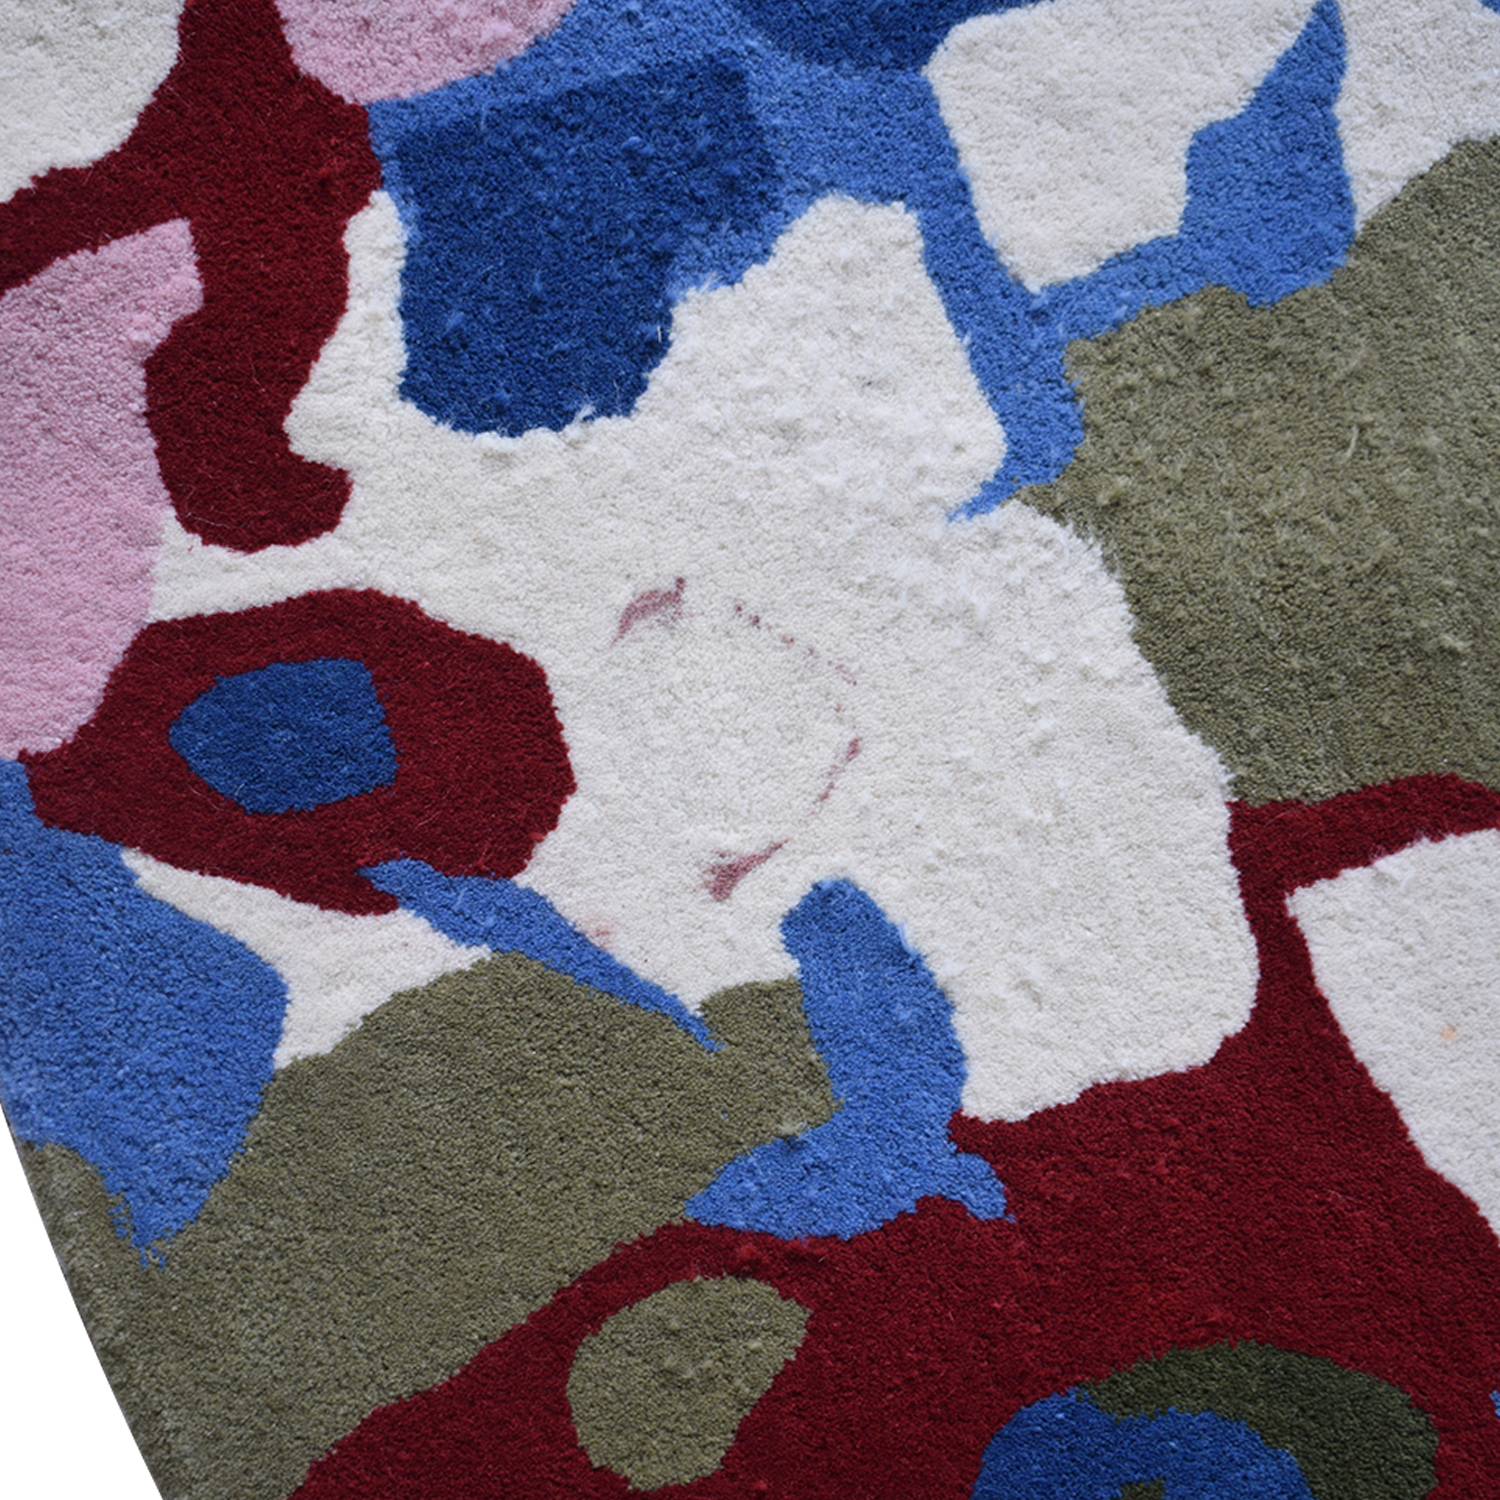 Obeetee Obeetee Round Multi-Colored Hand Tufted Rug discount